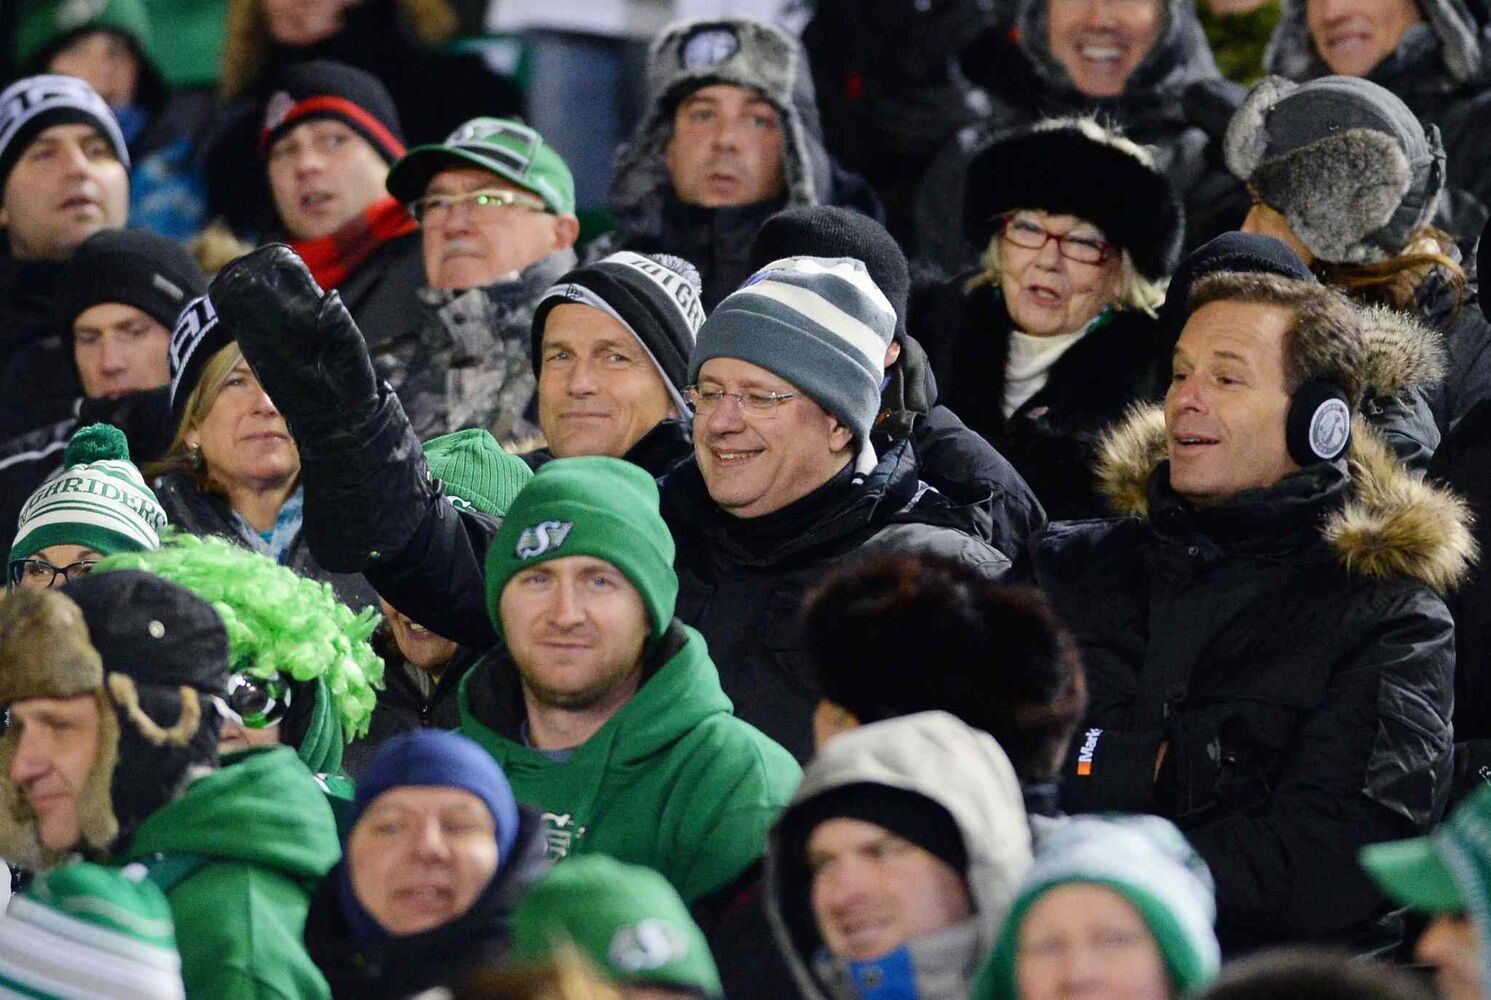 Prime Minister Stephen Harper (centre, in striped toque), sits with CFL Commissioner Mark Cohon (right) during the third quarter. (Liam Richards / The Canadian Press)